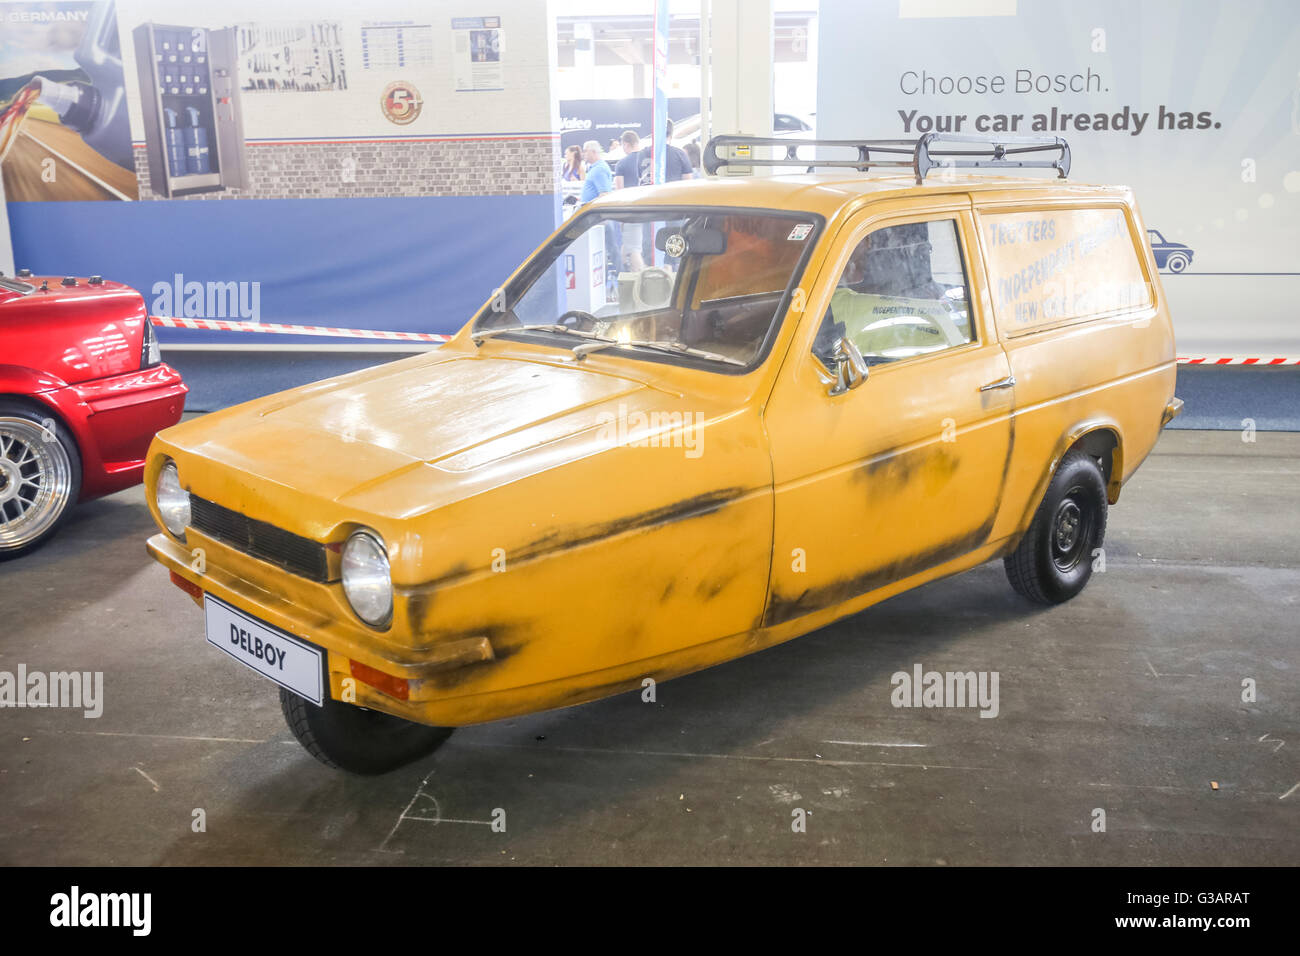 An iconic Reliant Regal supervan oldtimer nicknamed 'Stojadin' exhibited at Fast and furious street race - Stock Image